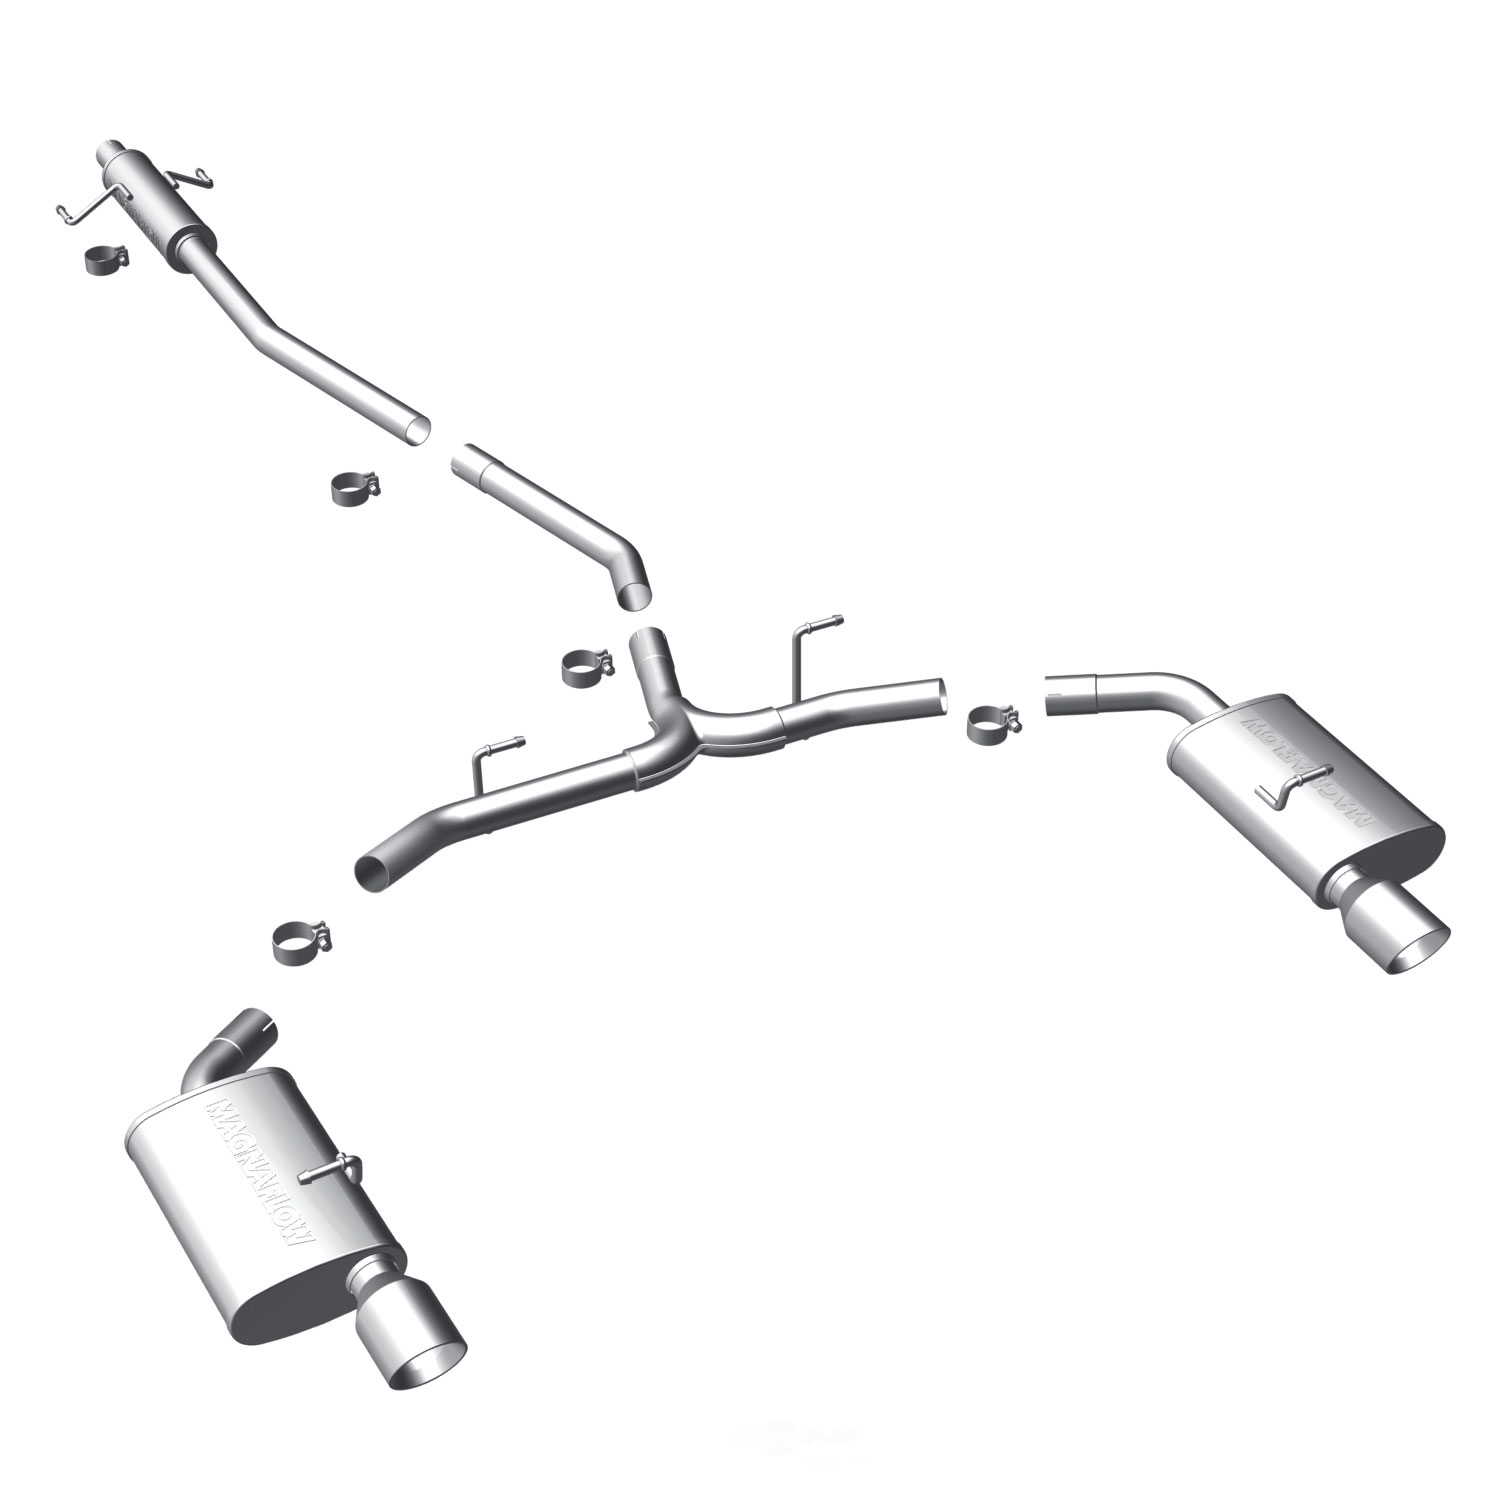 2010 FORD FUSION from MAGNAFLOW PERF EXHAUST Parts